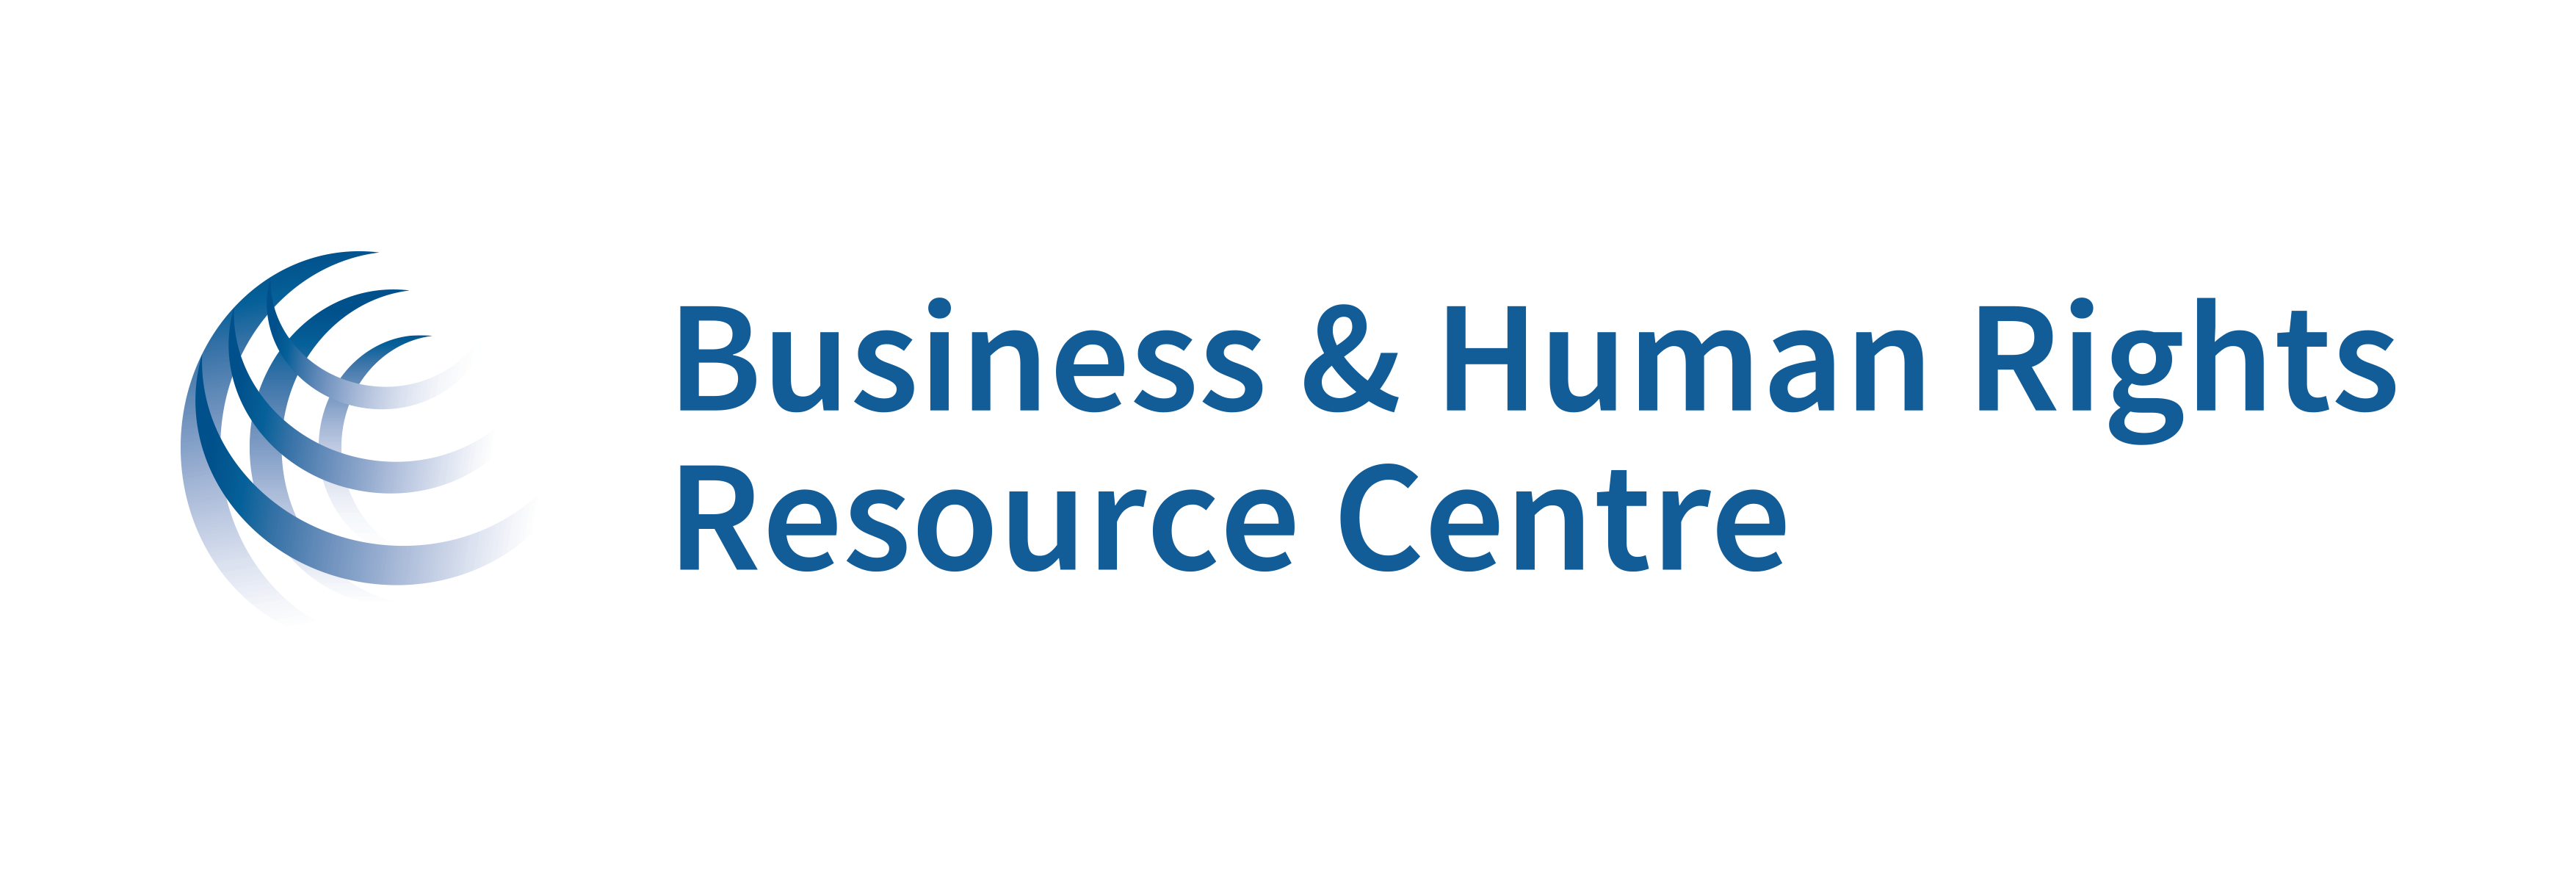 Business & Human Rights Resource Center